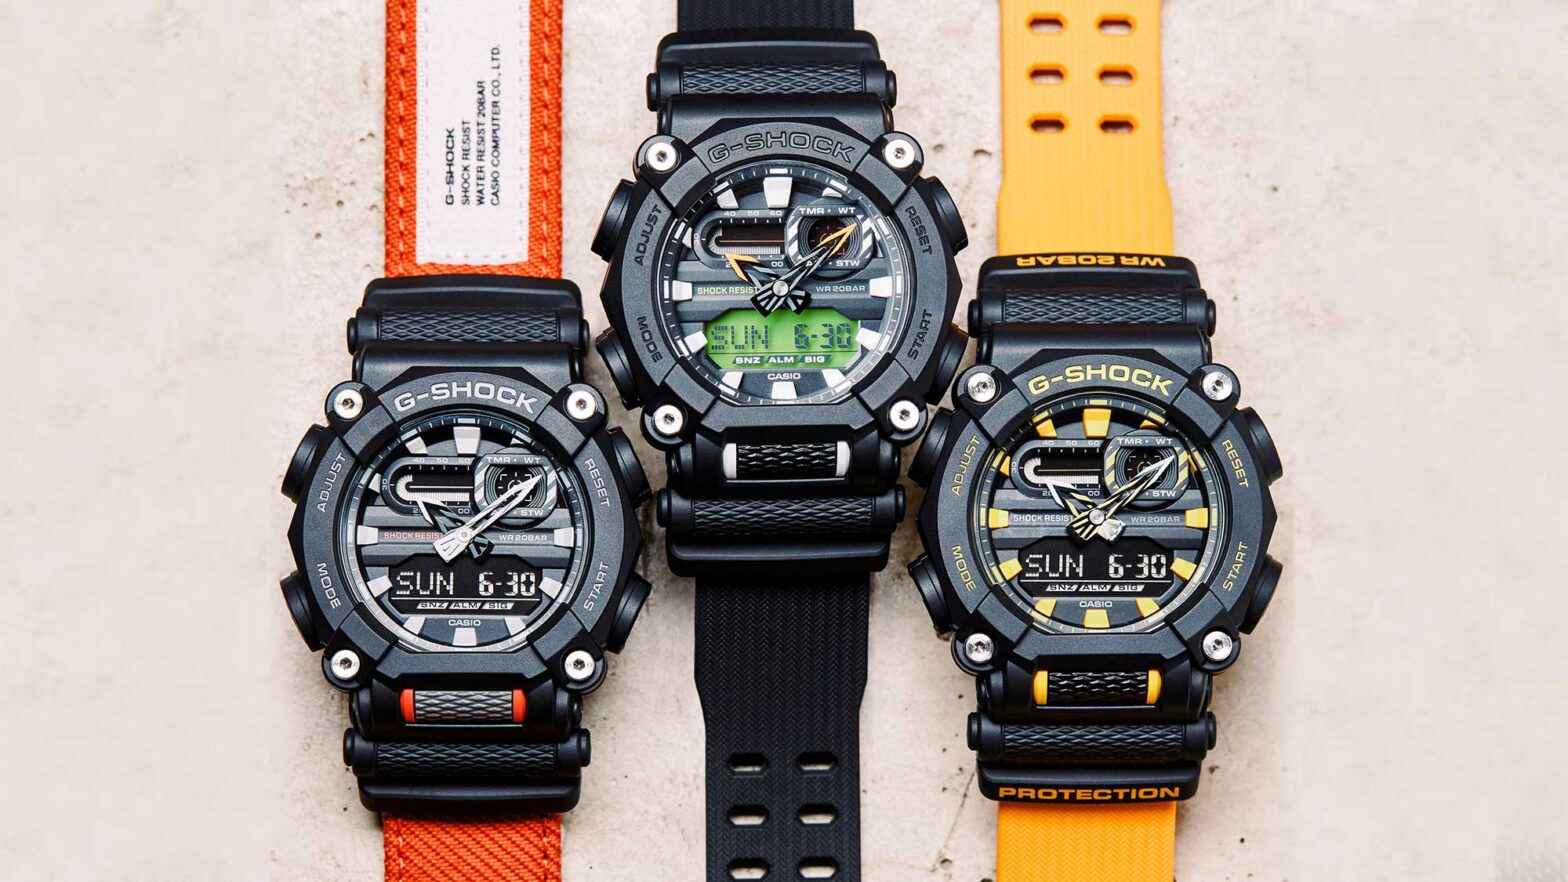 Casio G-Shock New GA900 Super Tough Watches